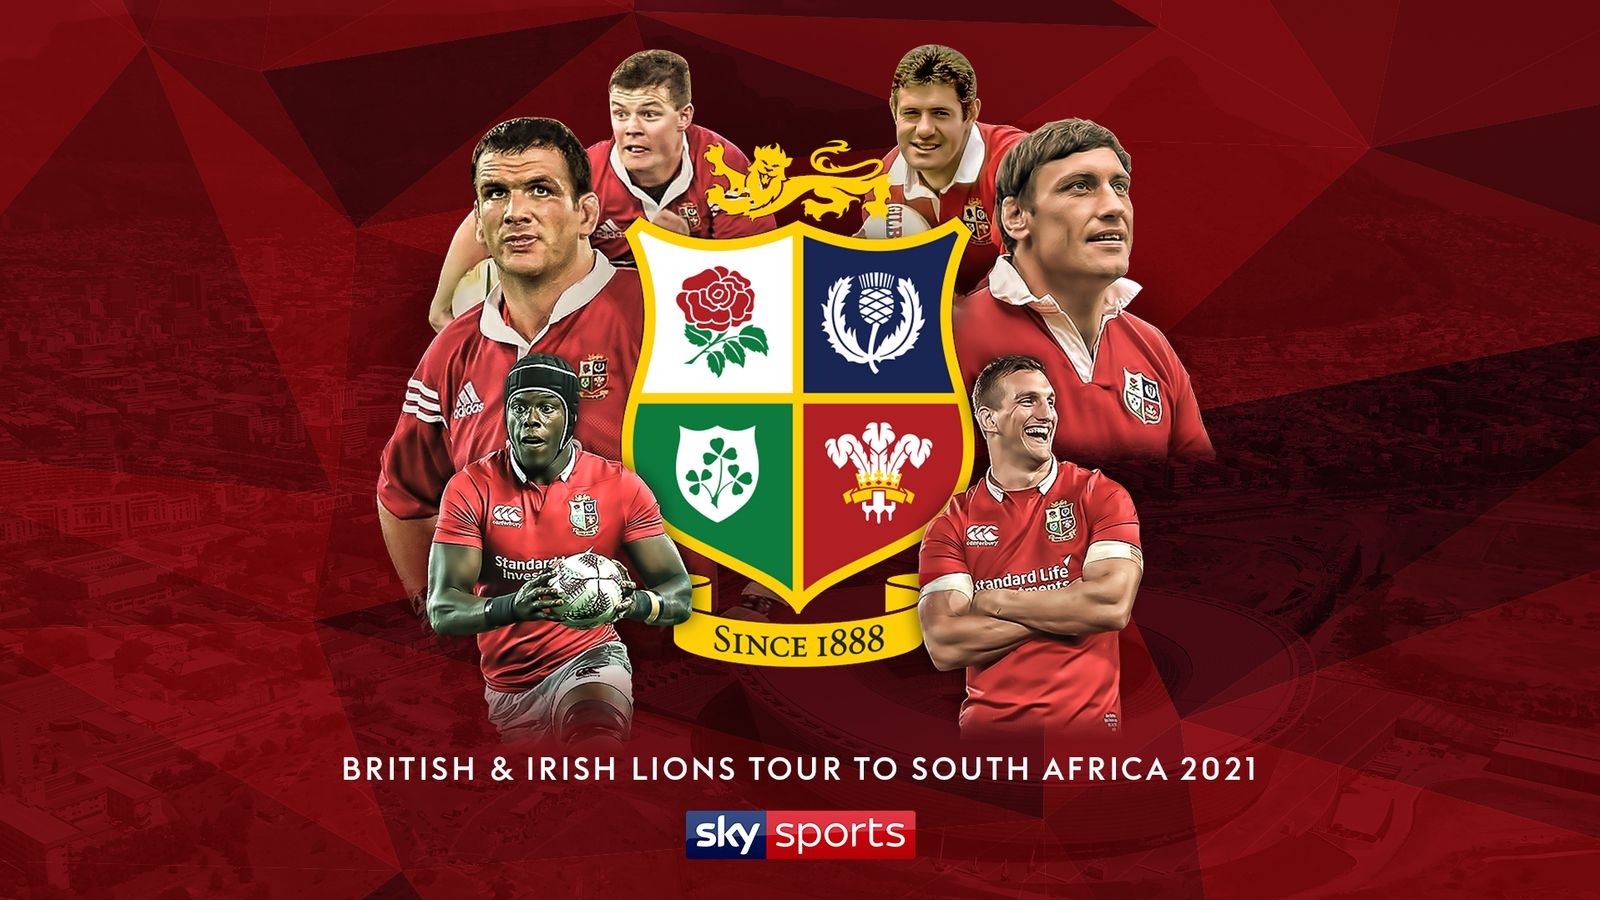 Wales Vs South Africa 2021